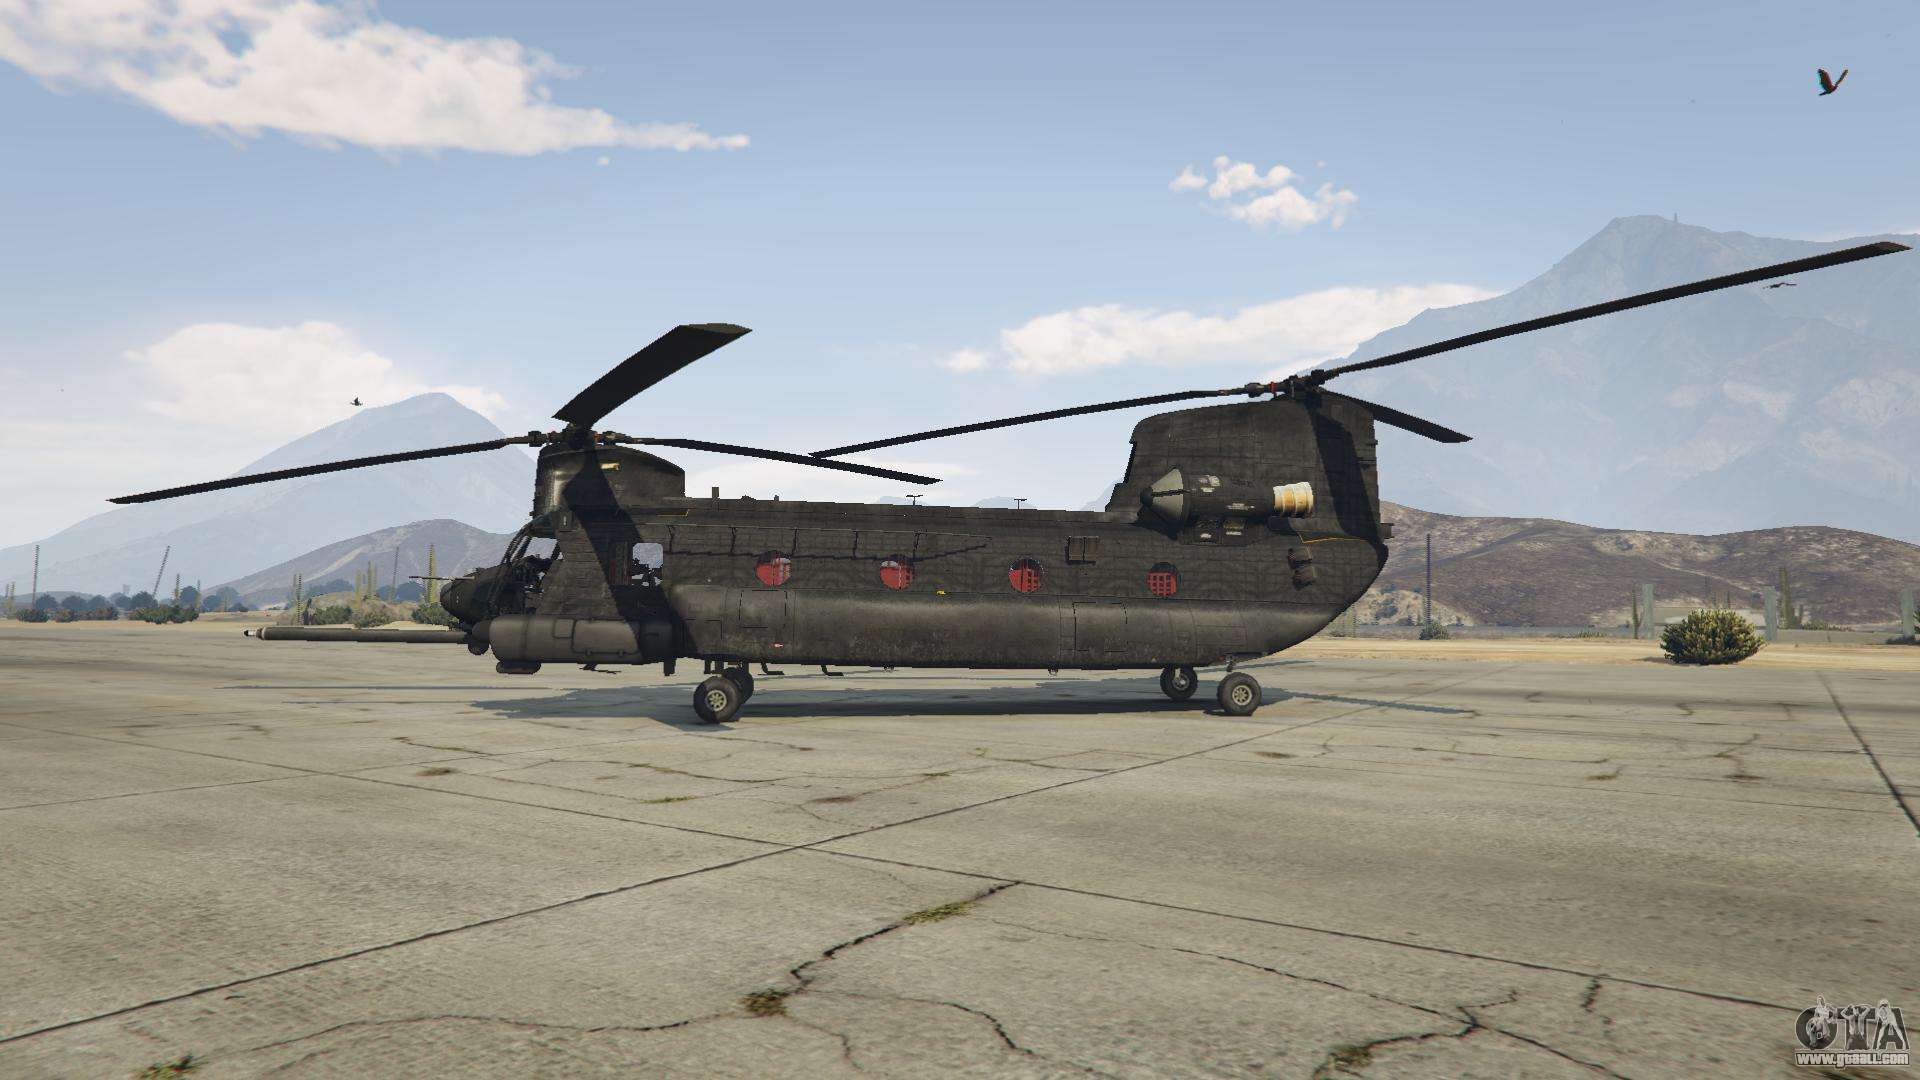 gta cheats vice city helicopter with 67998 Mh 47g Chinook on 73414 Hughes Oh 6 Cayuse additionally 71689 Bell Uh 1d Huey Bundeswehr besides Watch as well 31133 Team Xpg Gta V Trainer 9 likewise Download Gta Vice City Cheat Codes List.